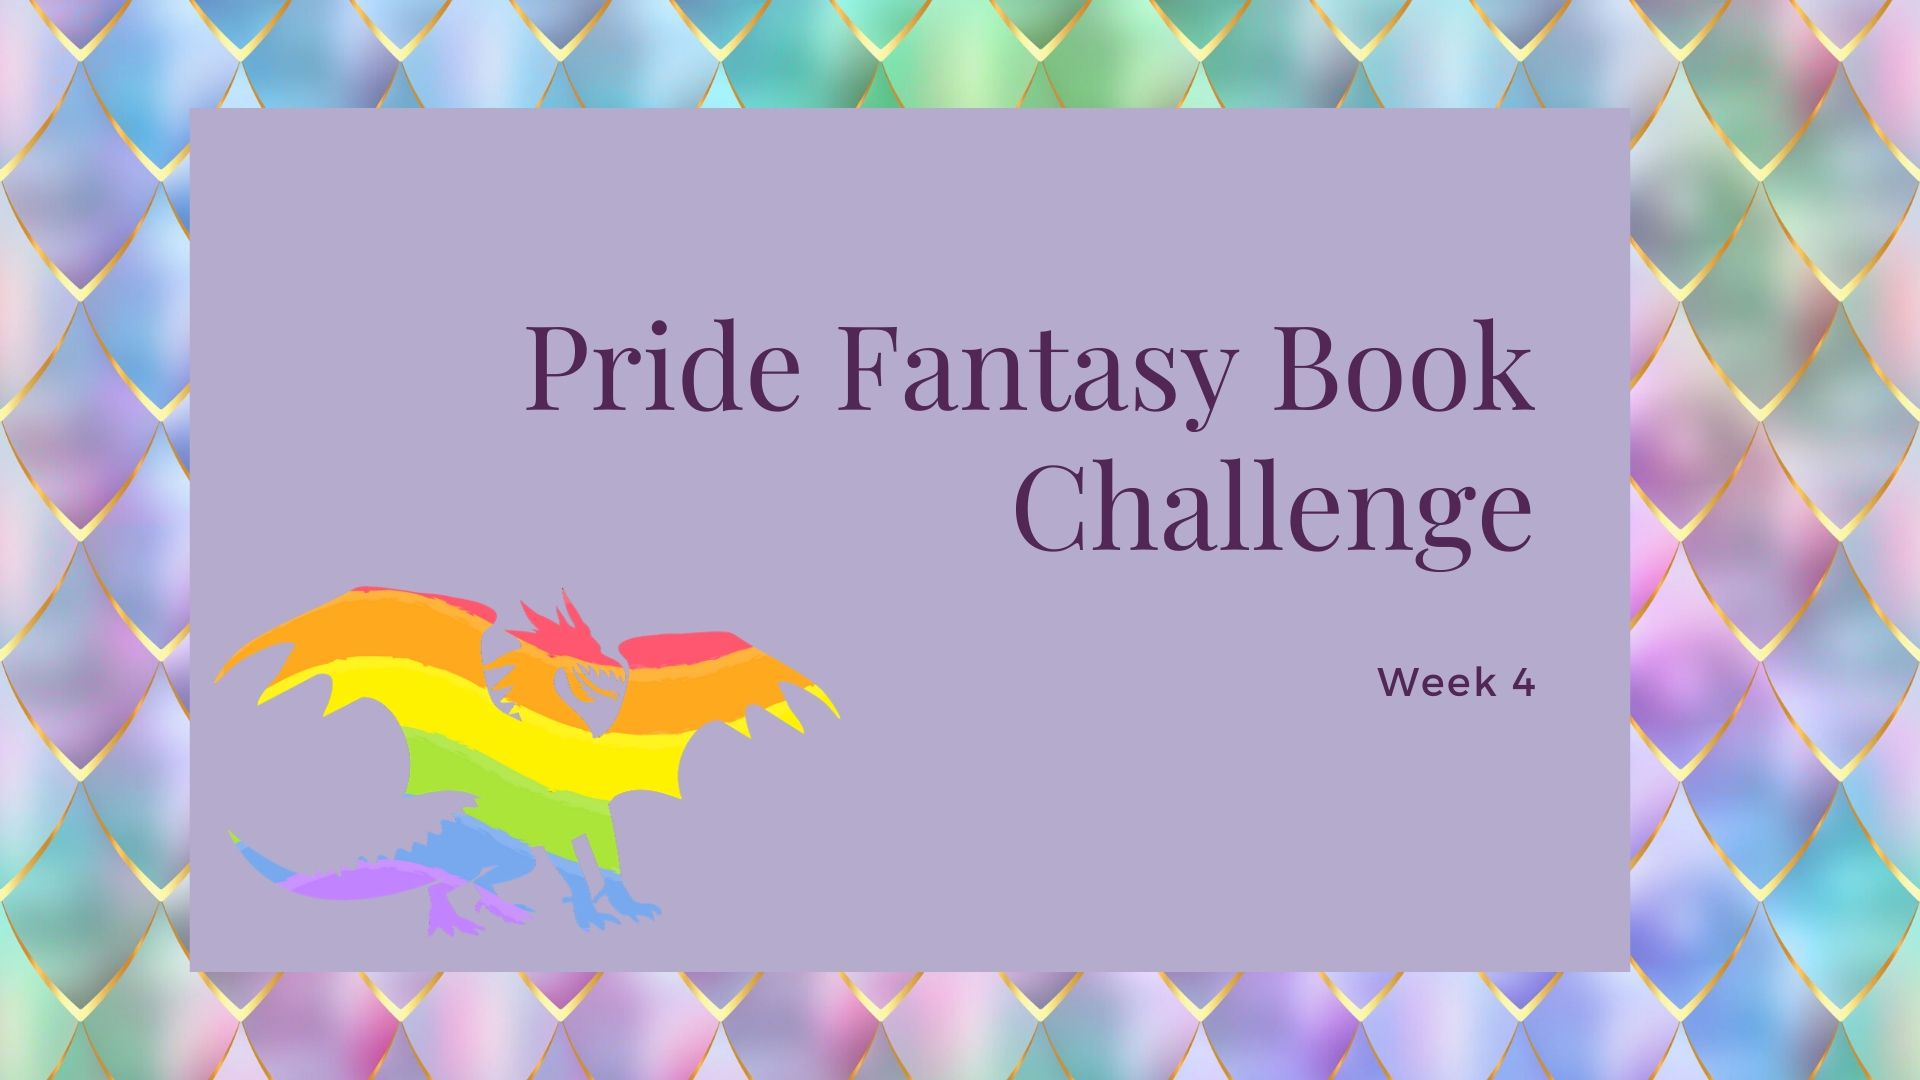 Pride Fantasy Books: Week 4